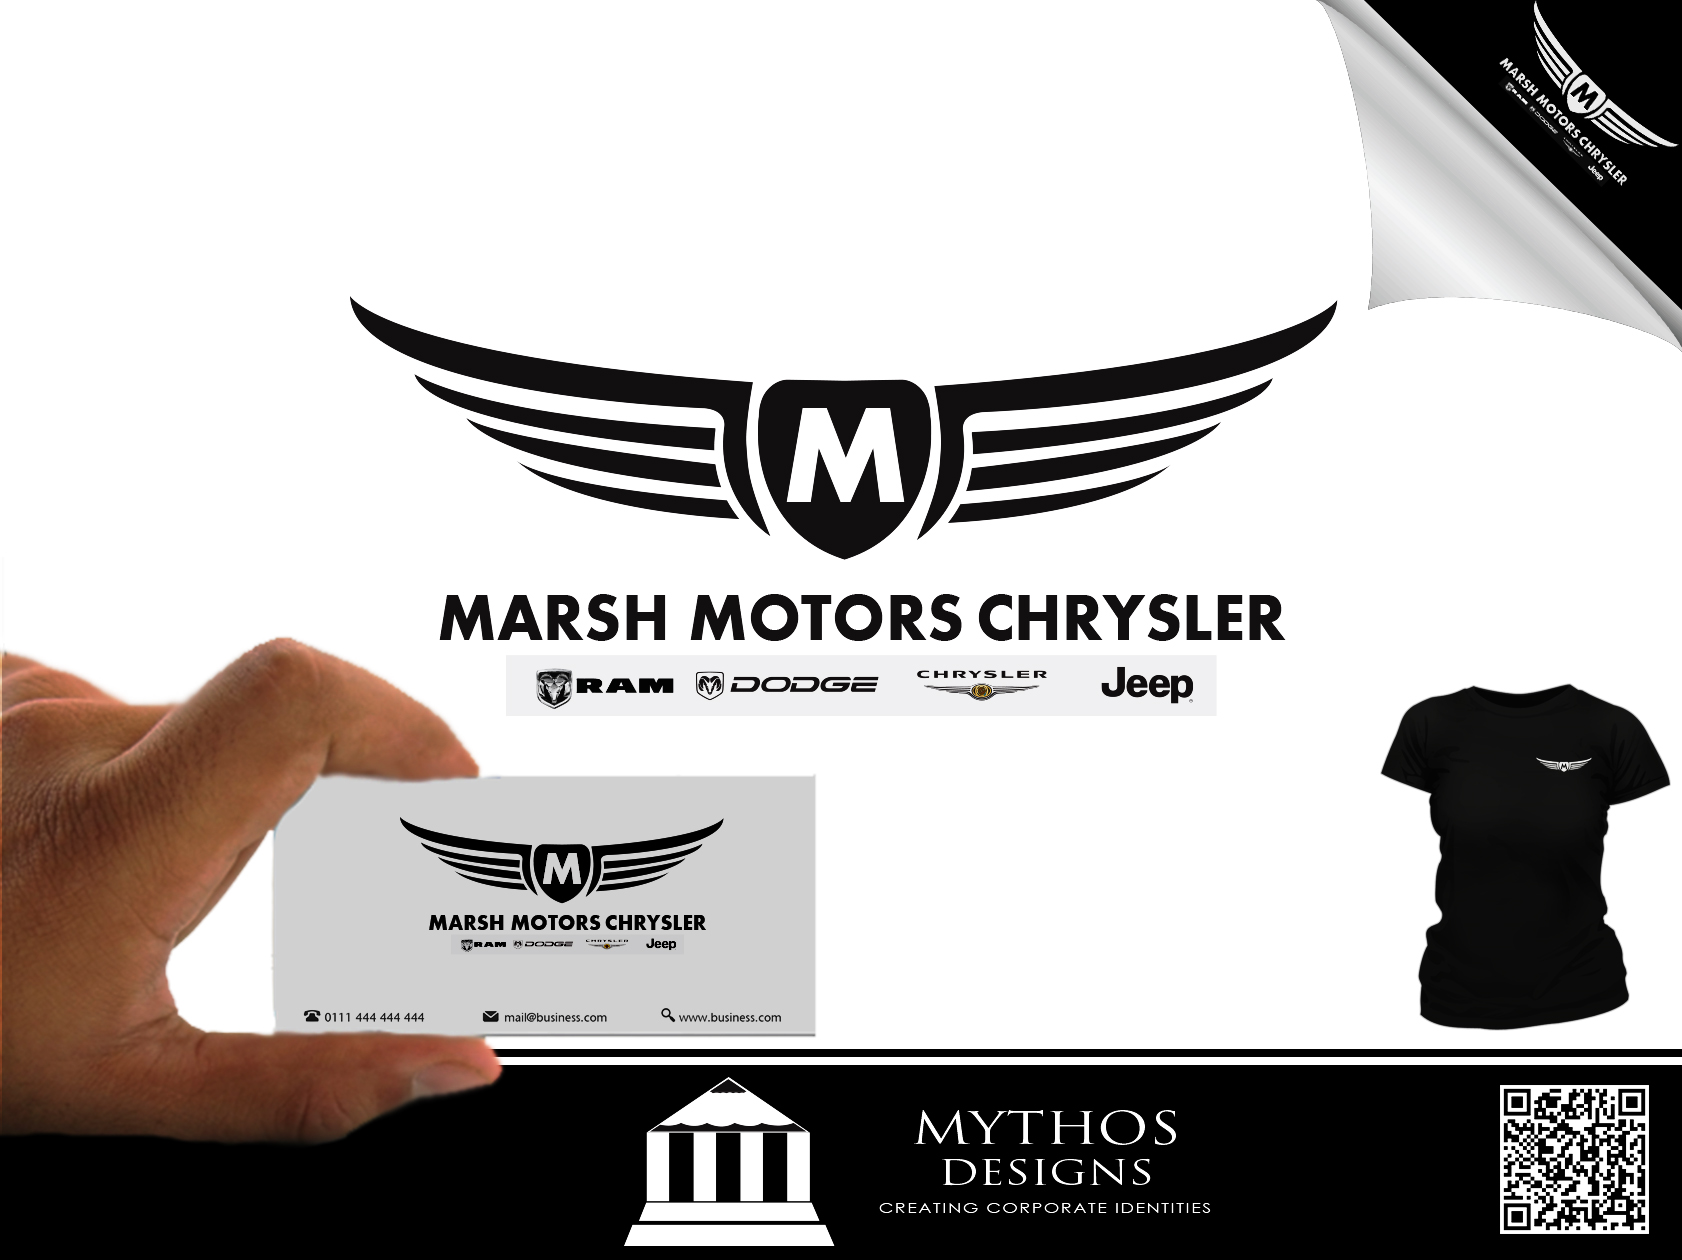 Logo Design by Mythos Designs - Entry No. 47 in the Logo Design Contest Marsh Motors Chrysler Logo Design.